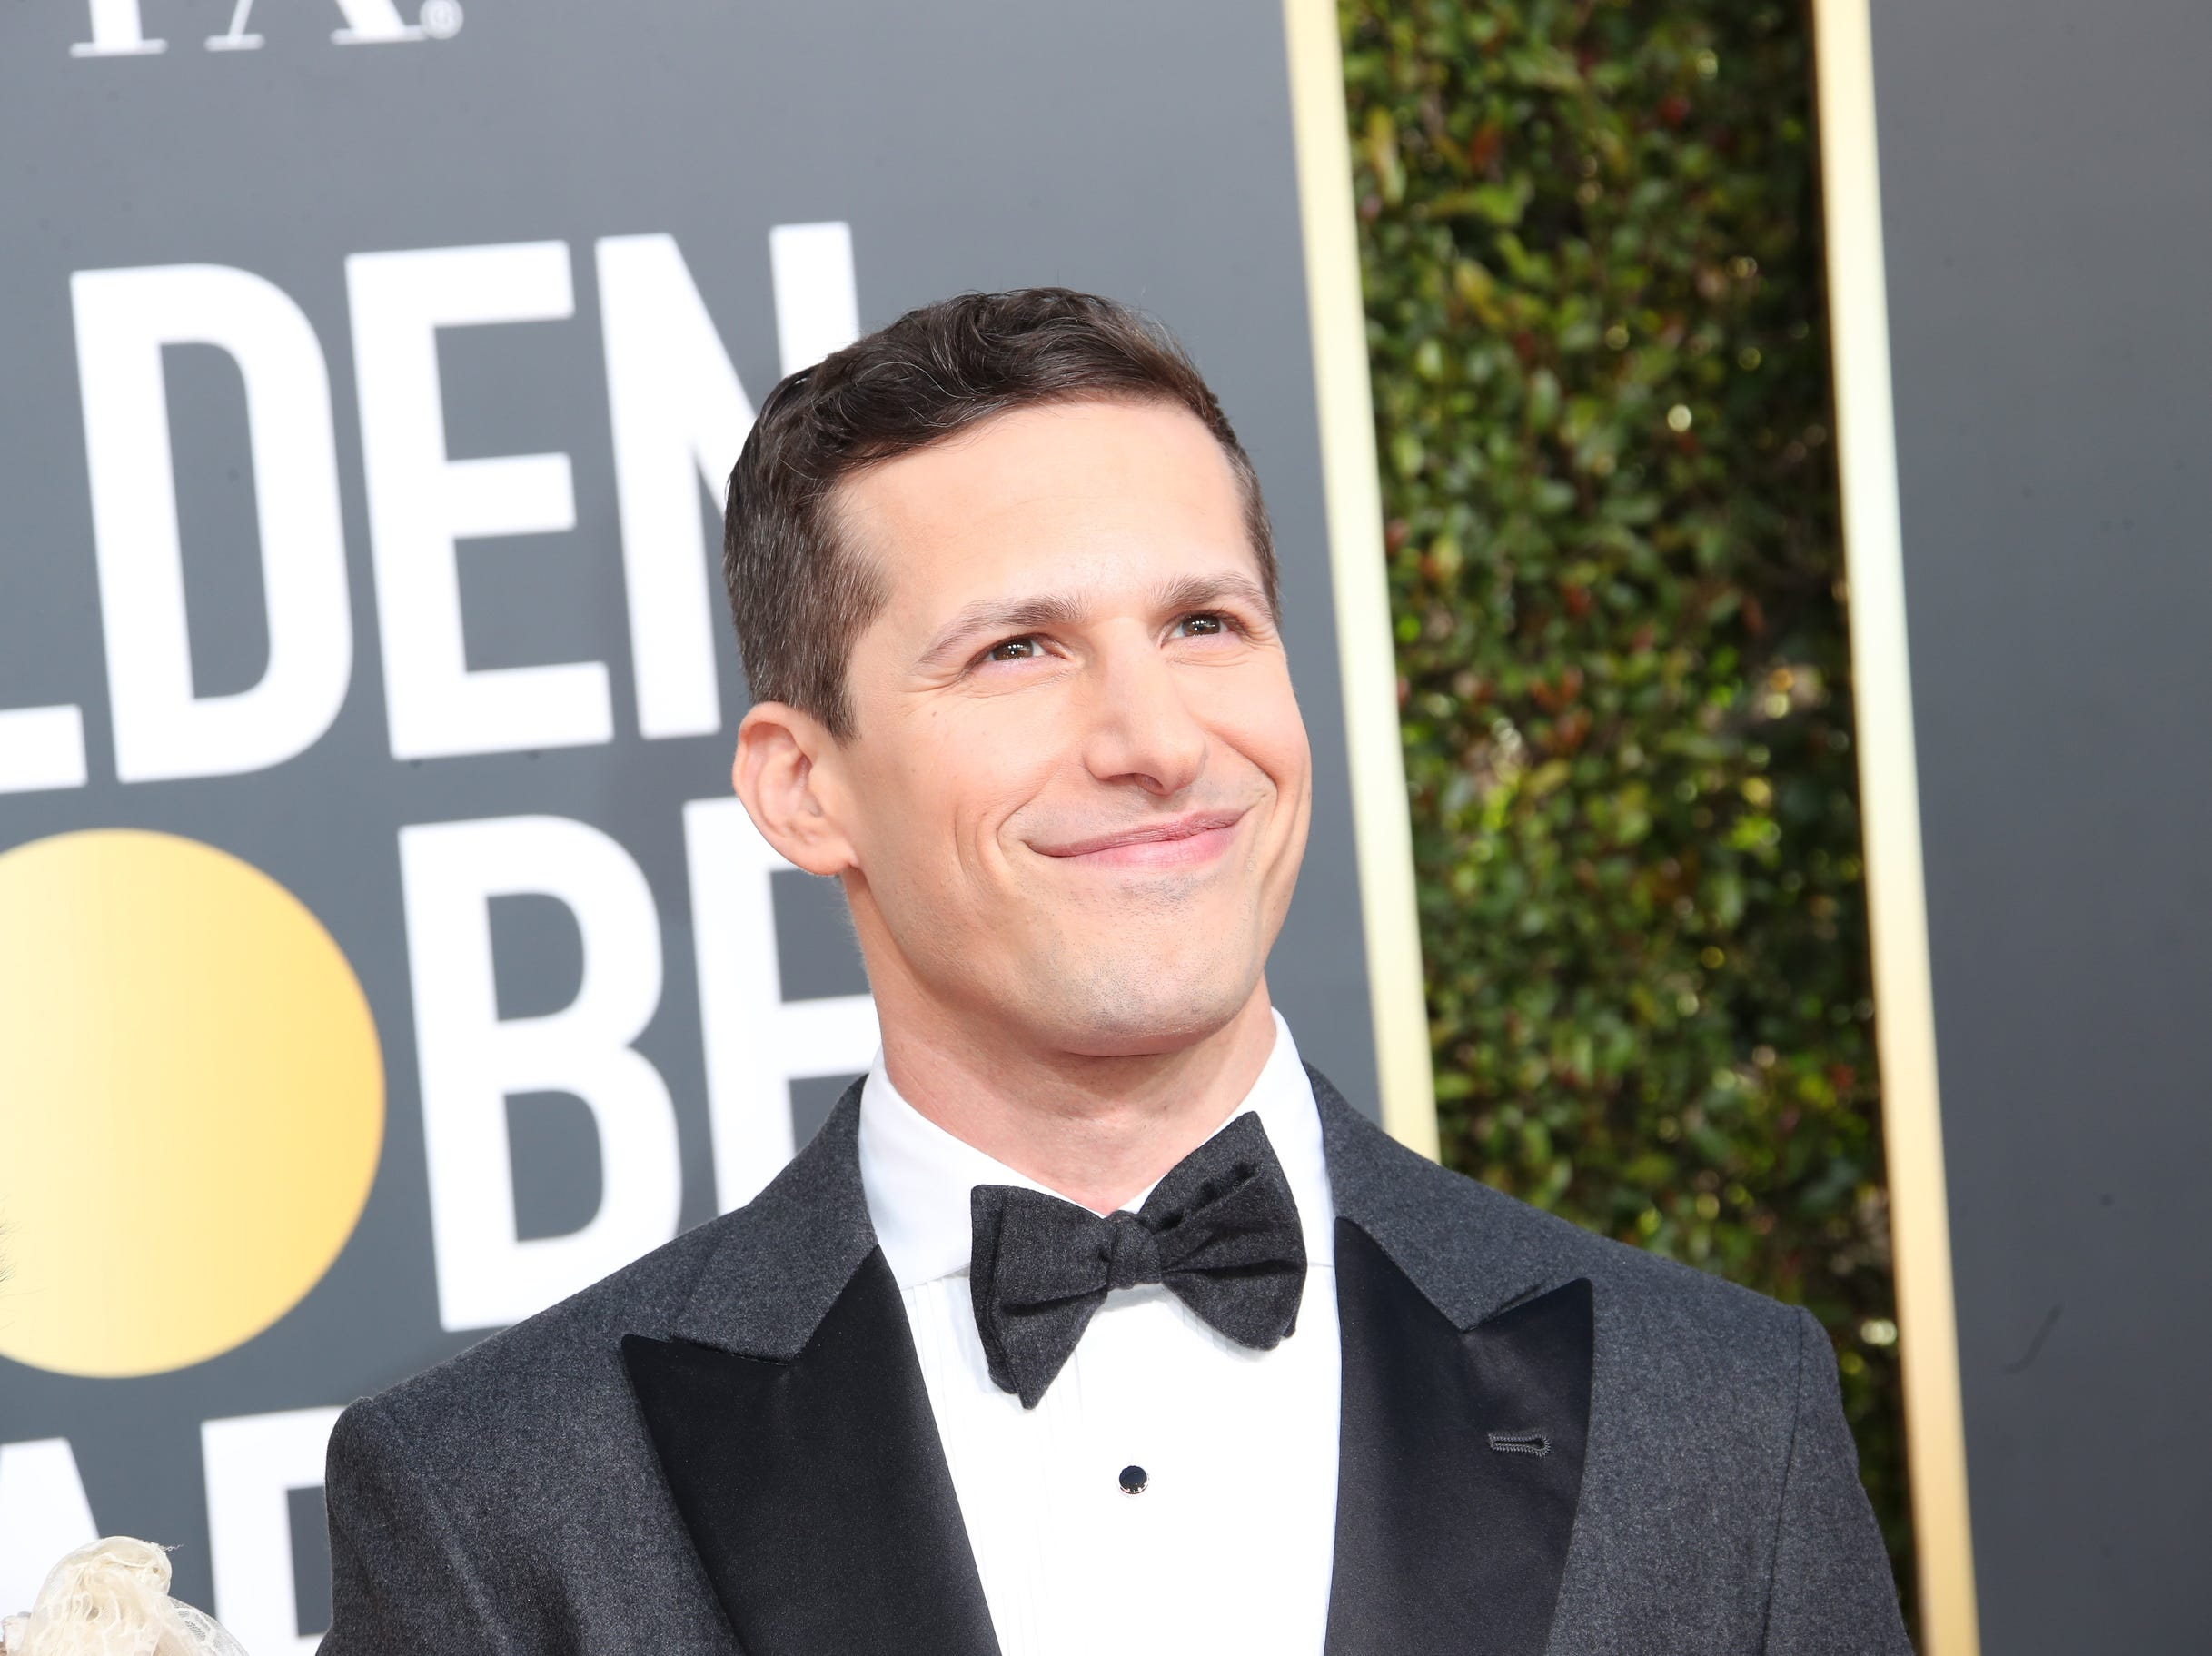 Golden Globe Awards co-host Andy Samberg